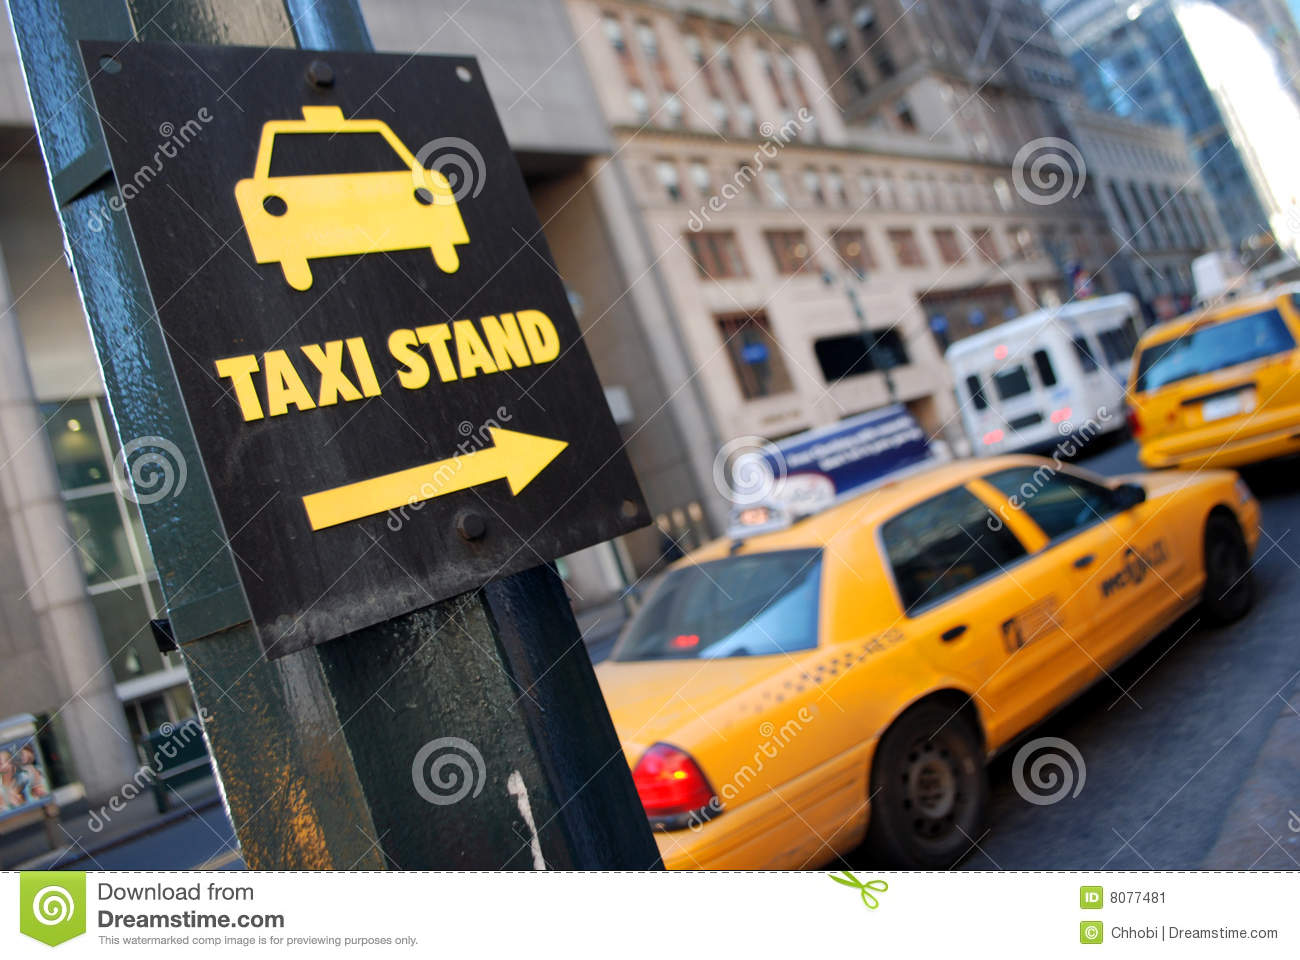 Taxi Stand Clip Art.